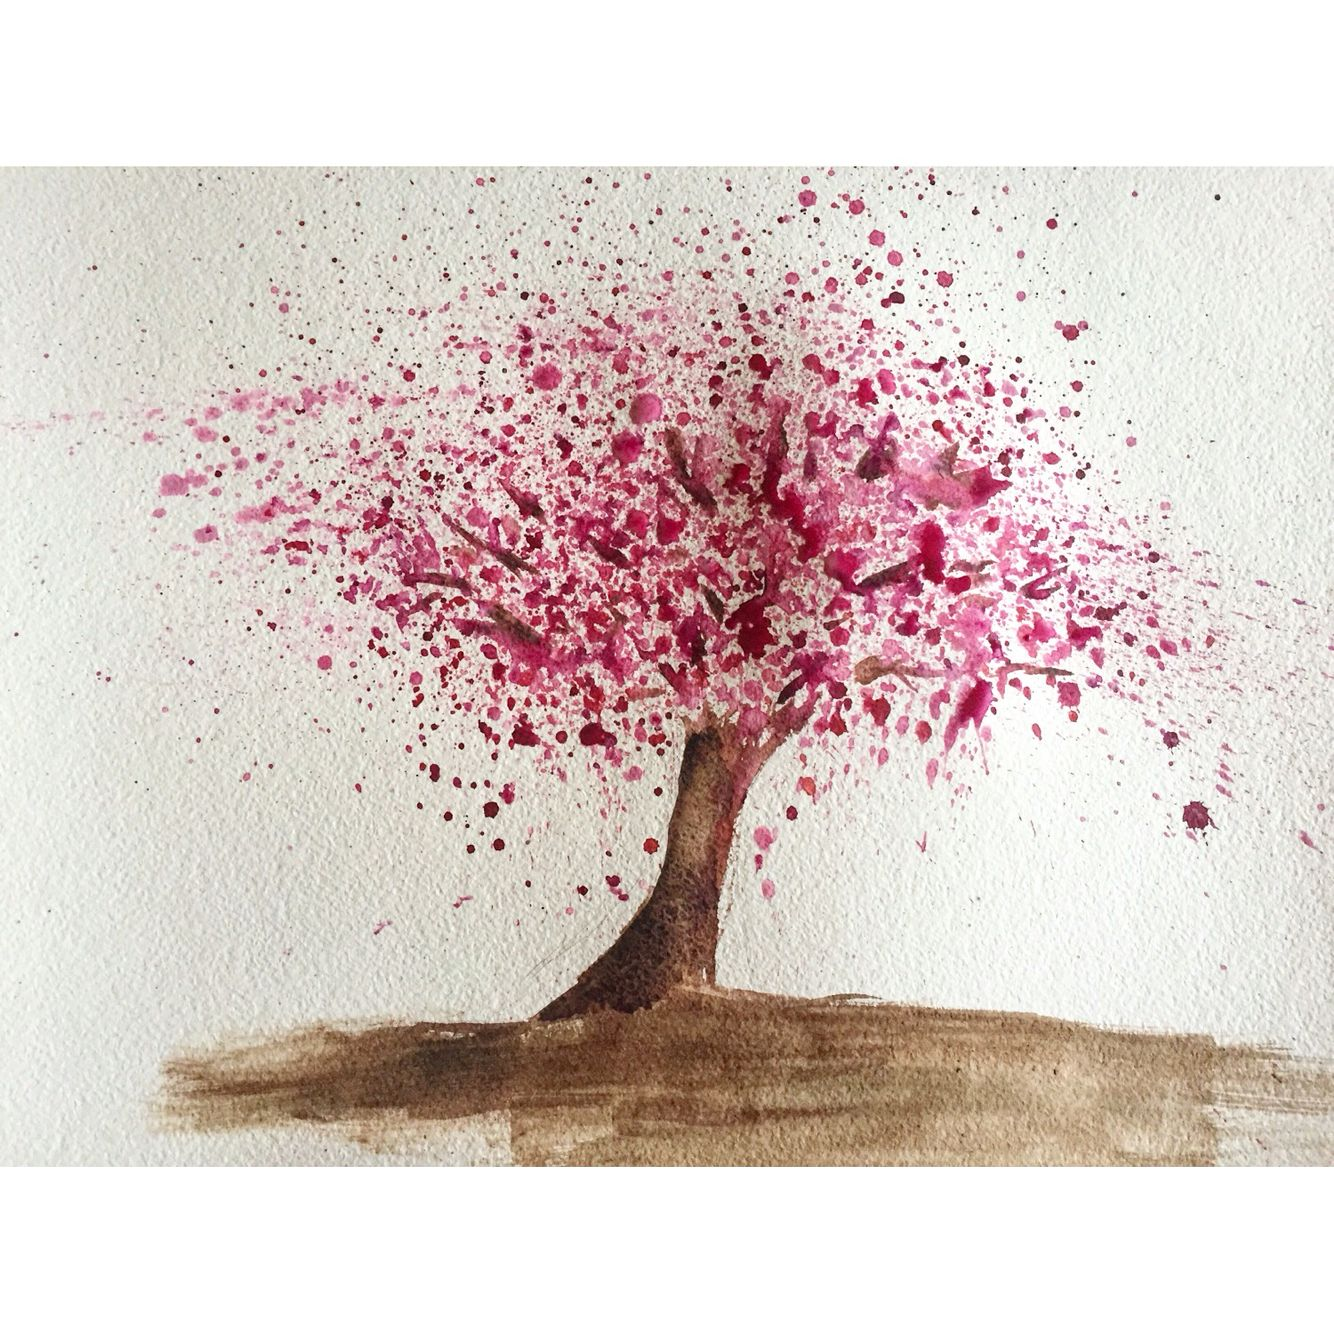 1334x1334 Well It Was Meant To Be A Blooming Sakura Tree )